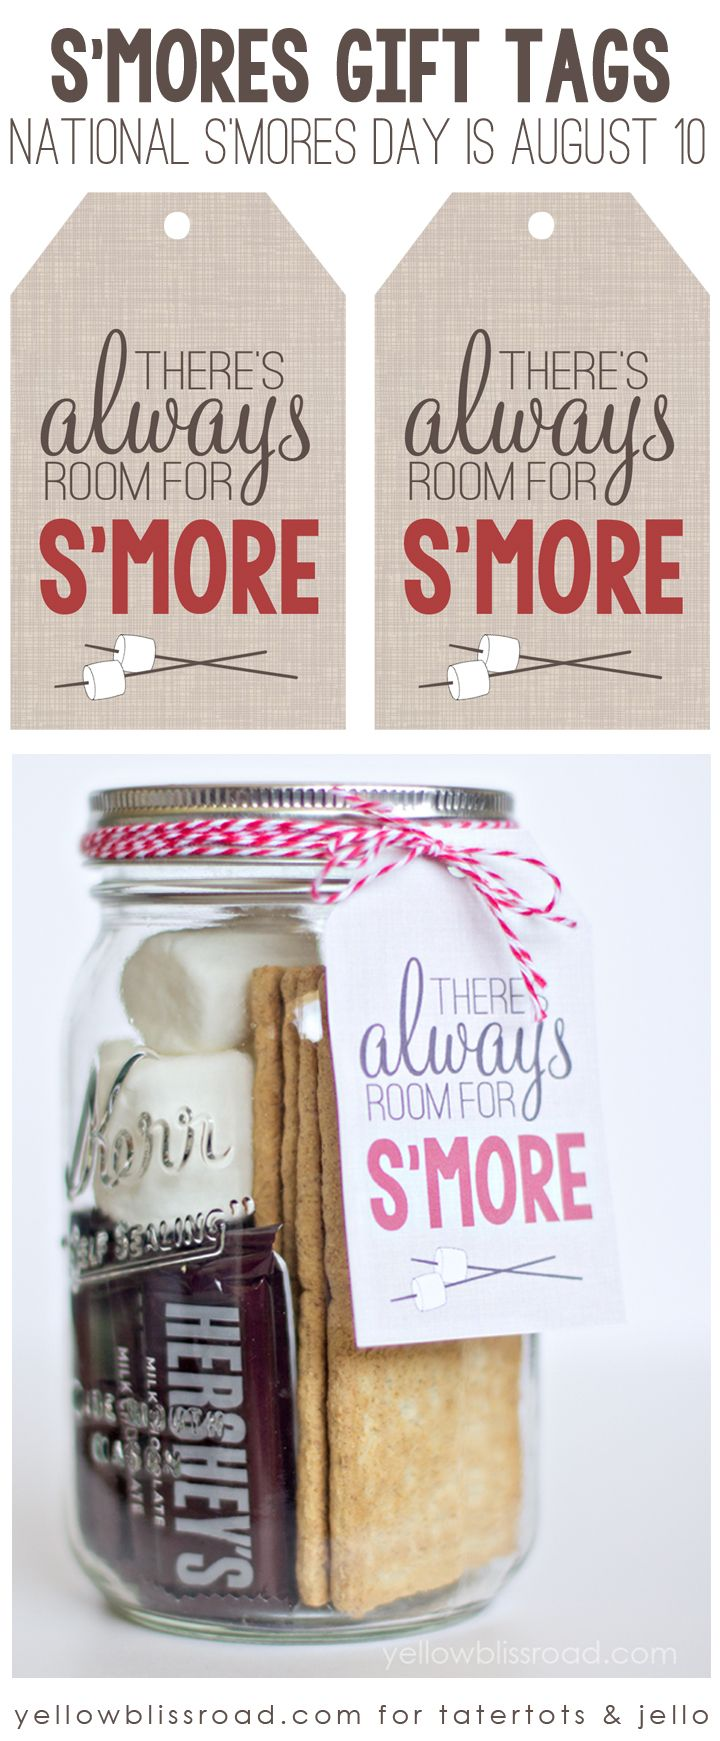 """""""There's Always Room for S'More"""" free printable graphic. Perfect for National S'Mores Day August 10!!"""